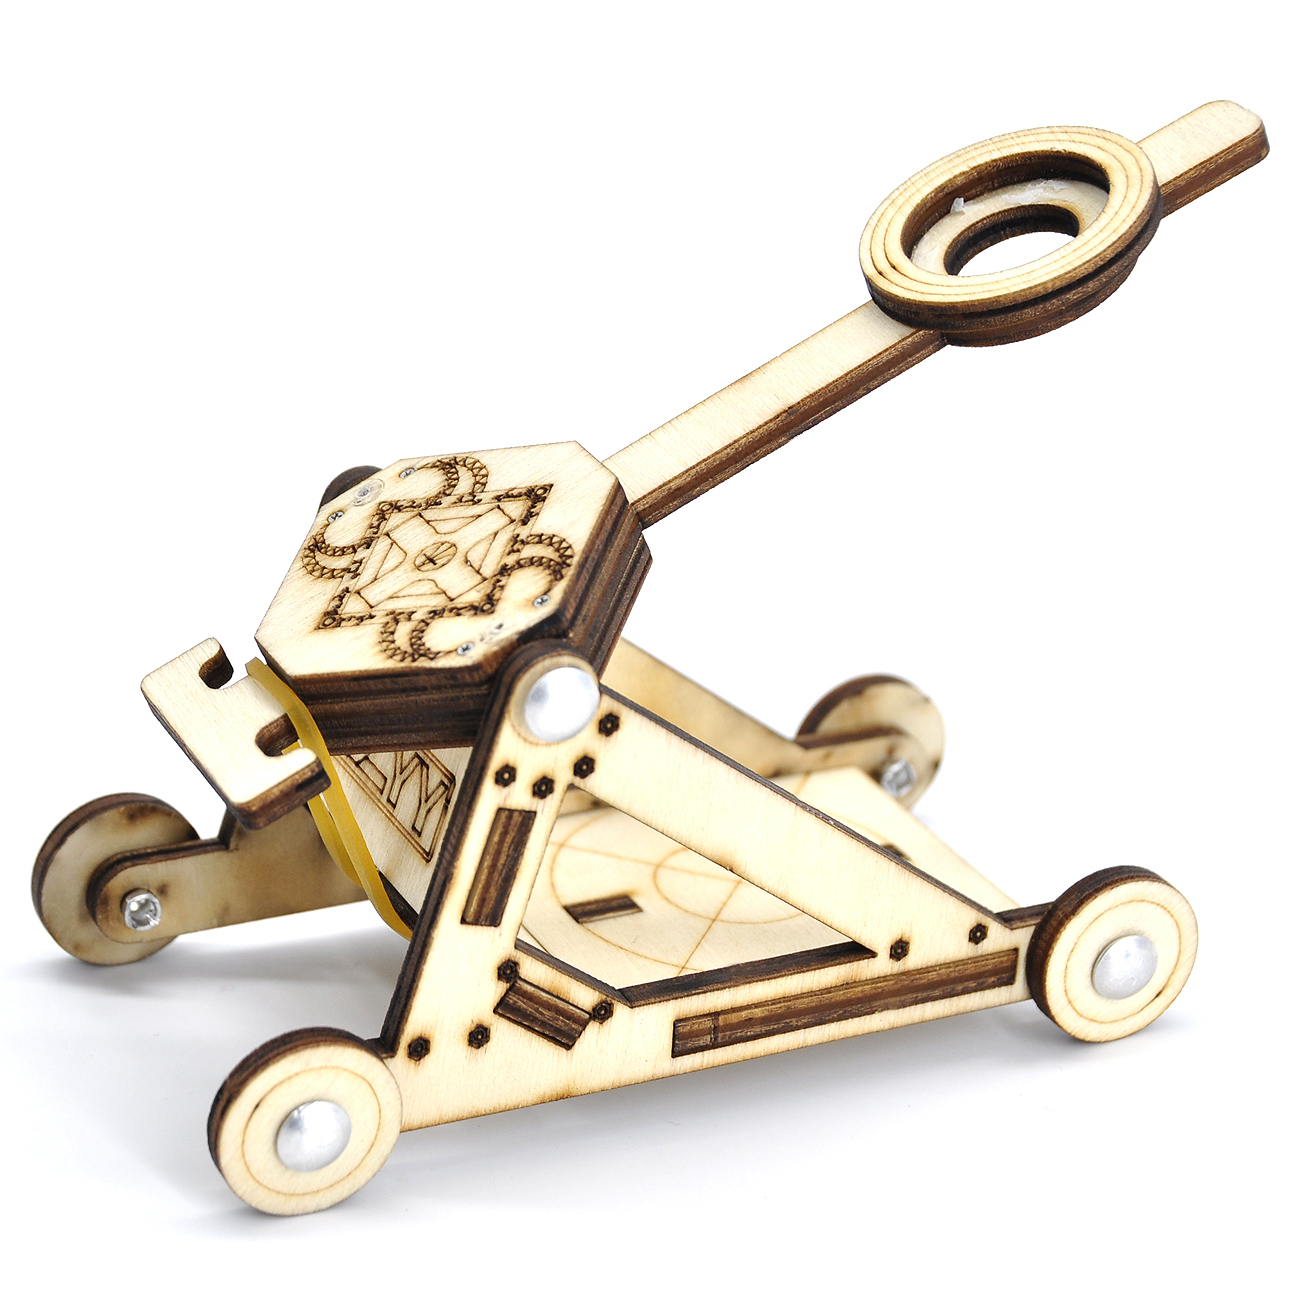 DIY Wood Catapult Kit Powered by Rubber Band Office Stress Relief Gadgets Great Desk Fidget Toy for Adults & Kids